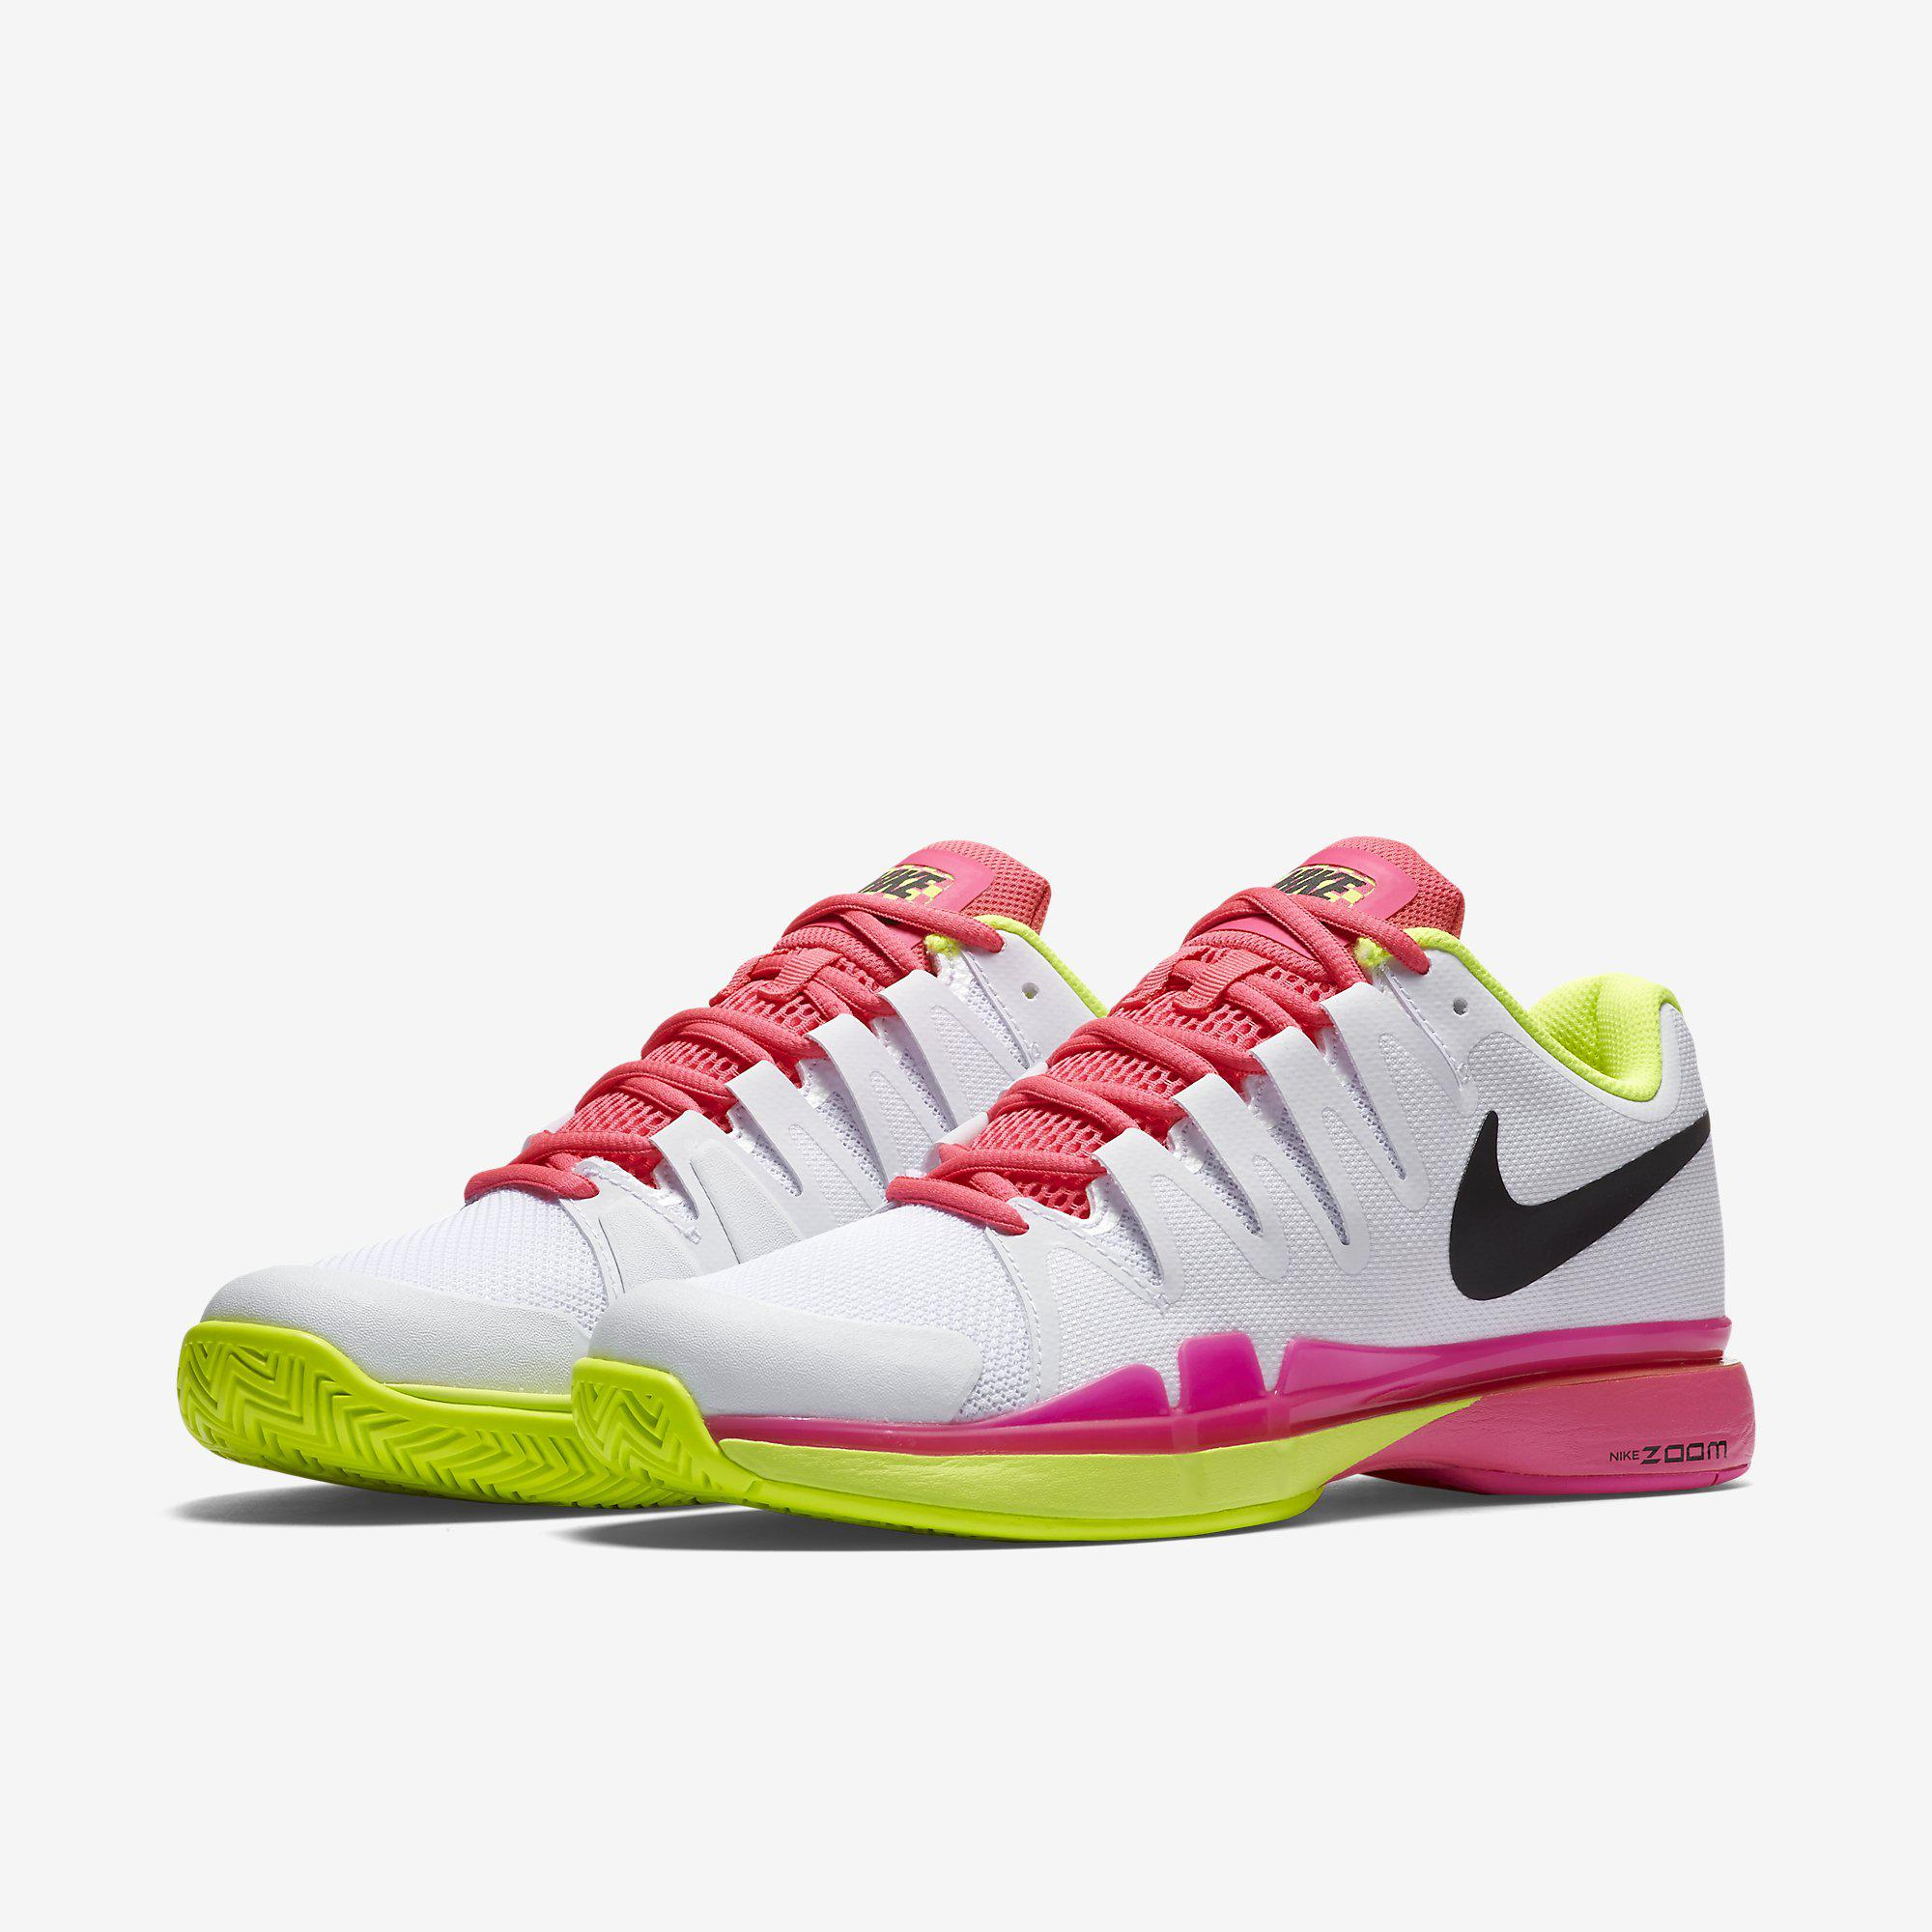 Nike Womens Zoom Vapor 9.5 Tennis Shoes - White/Volt/Pink